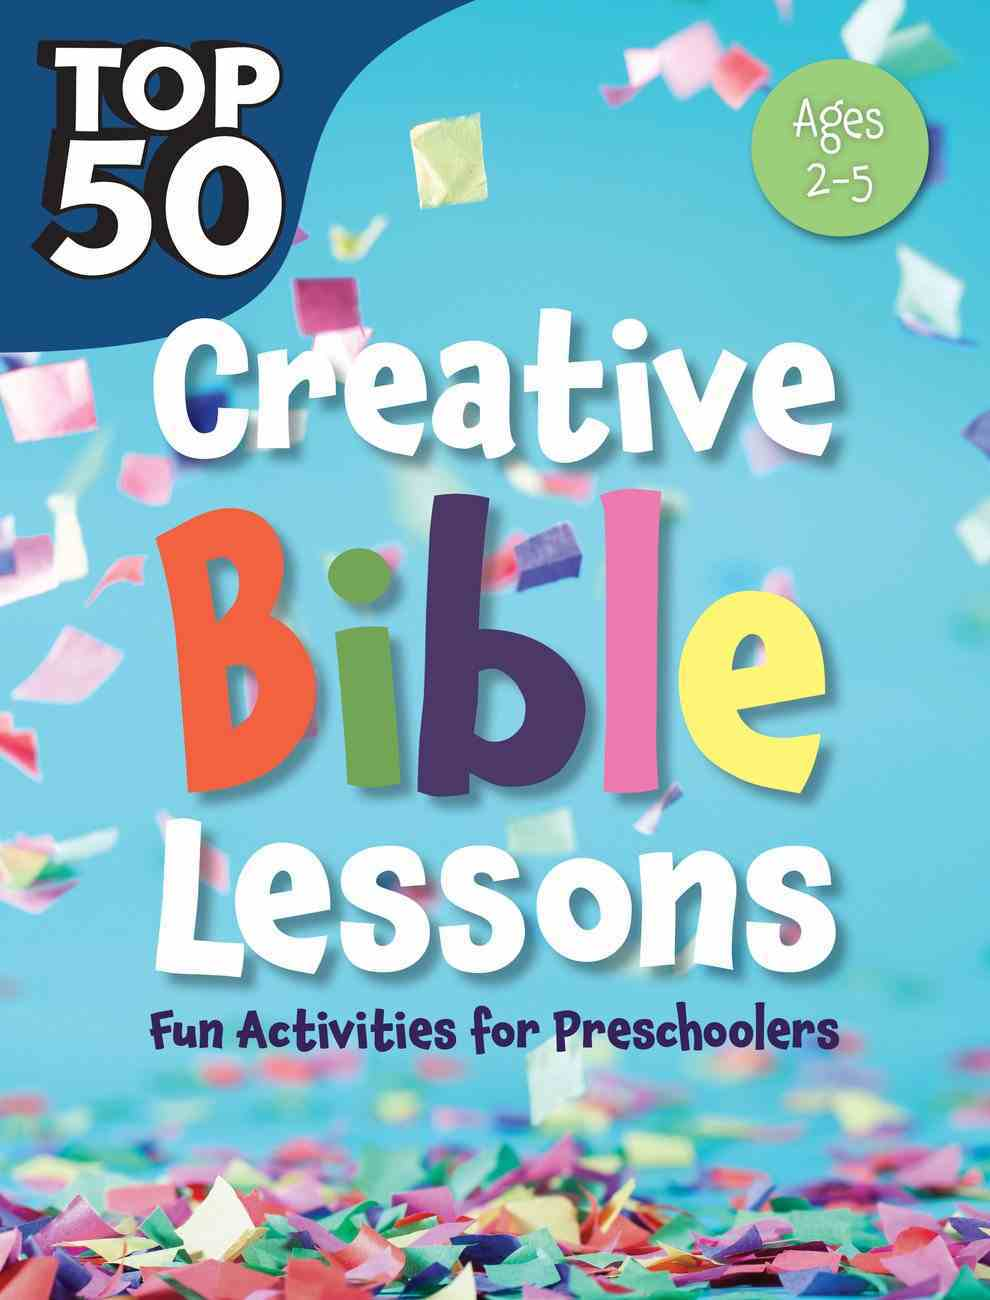 Top 50 Creative Bible Lessons (Ages 2-5) (Rosekidz Top 50 Series) Paperback